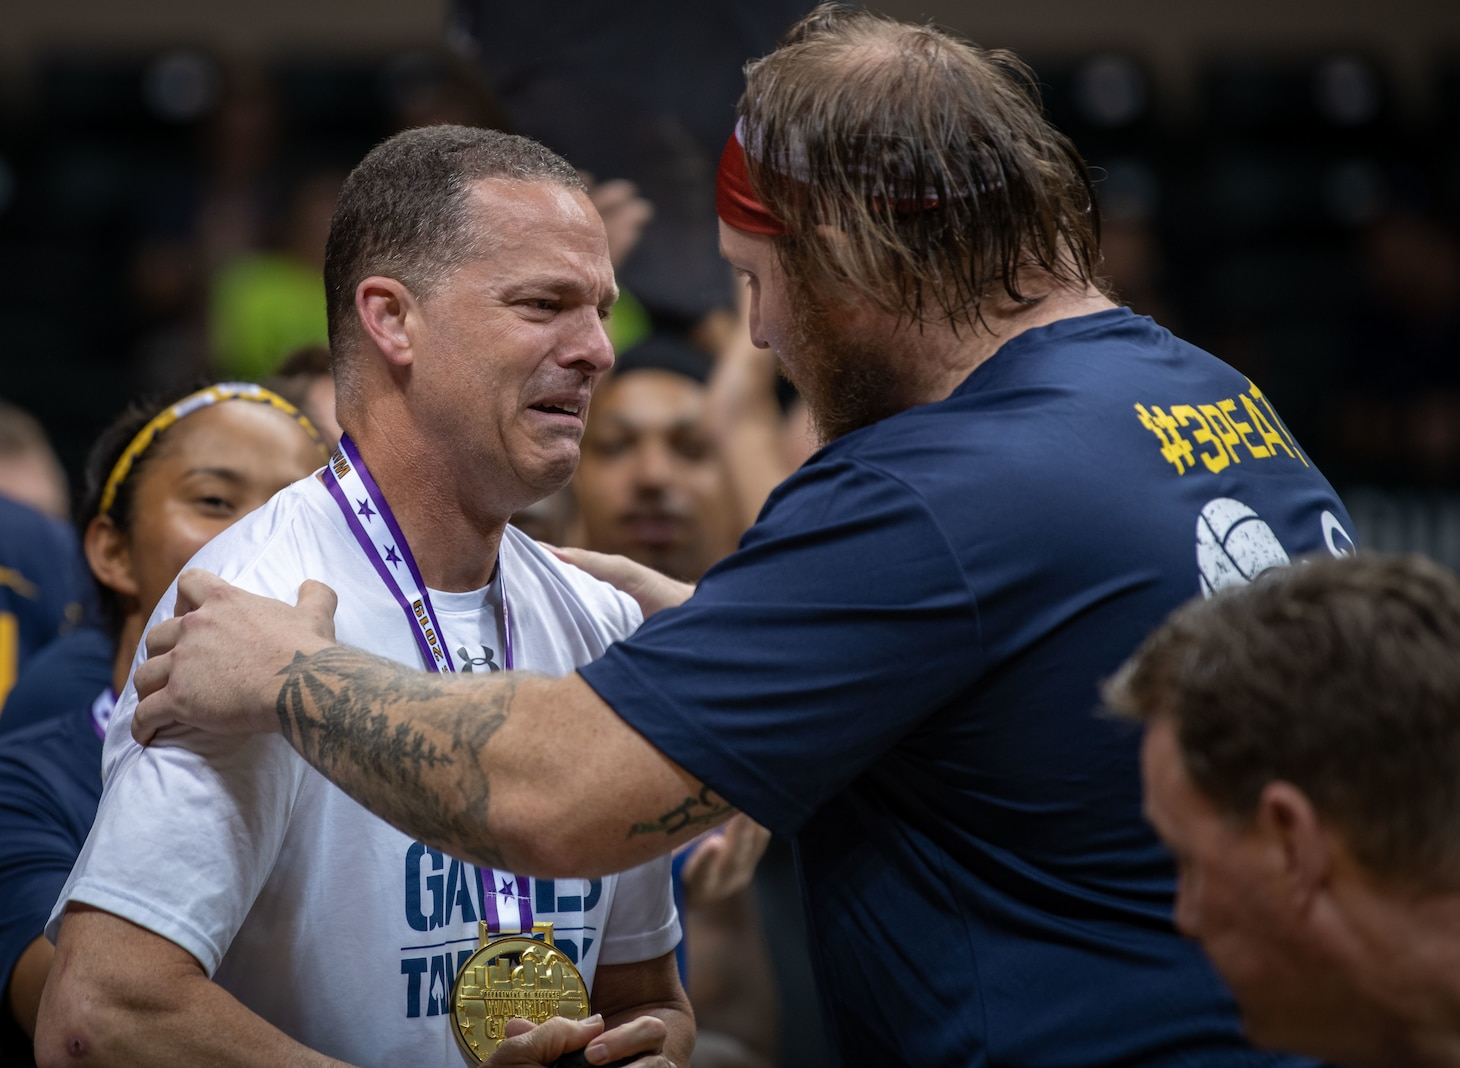 Navy Petty Officer 1st Class Tyson Schmidt, right, gives Navy Capt. Daryl Schaffer, left, his gold medal for sitting volleyball during the 2019 DoD Warrior Games at Yuengling Center in Tampa, Florida